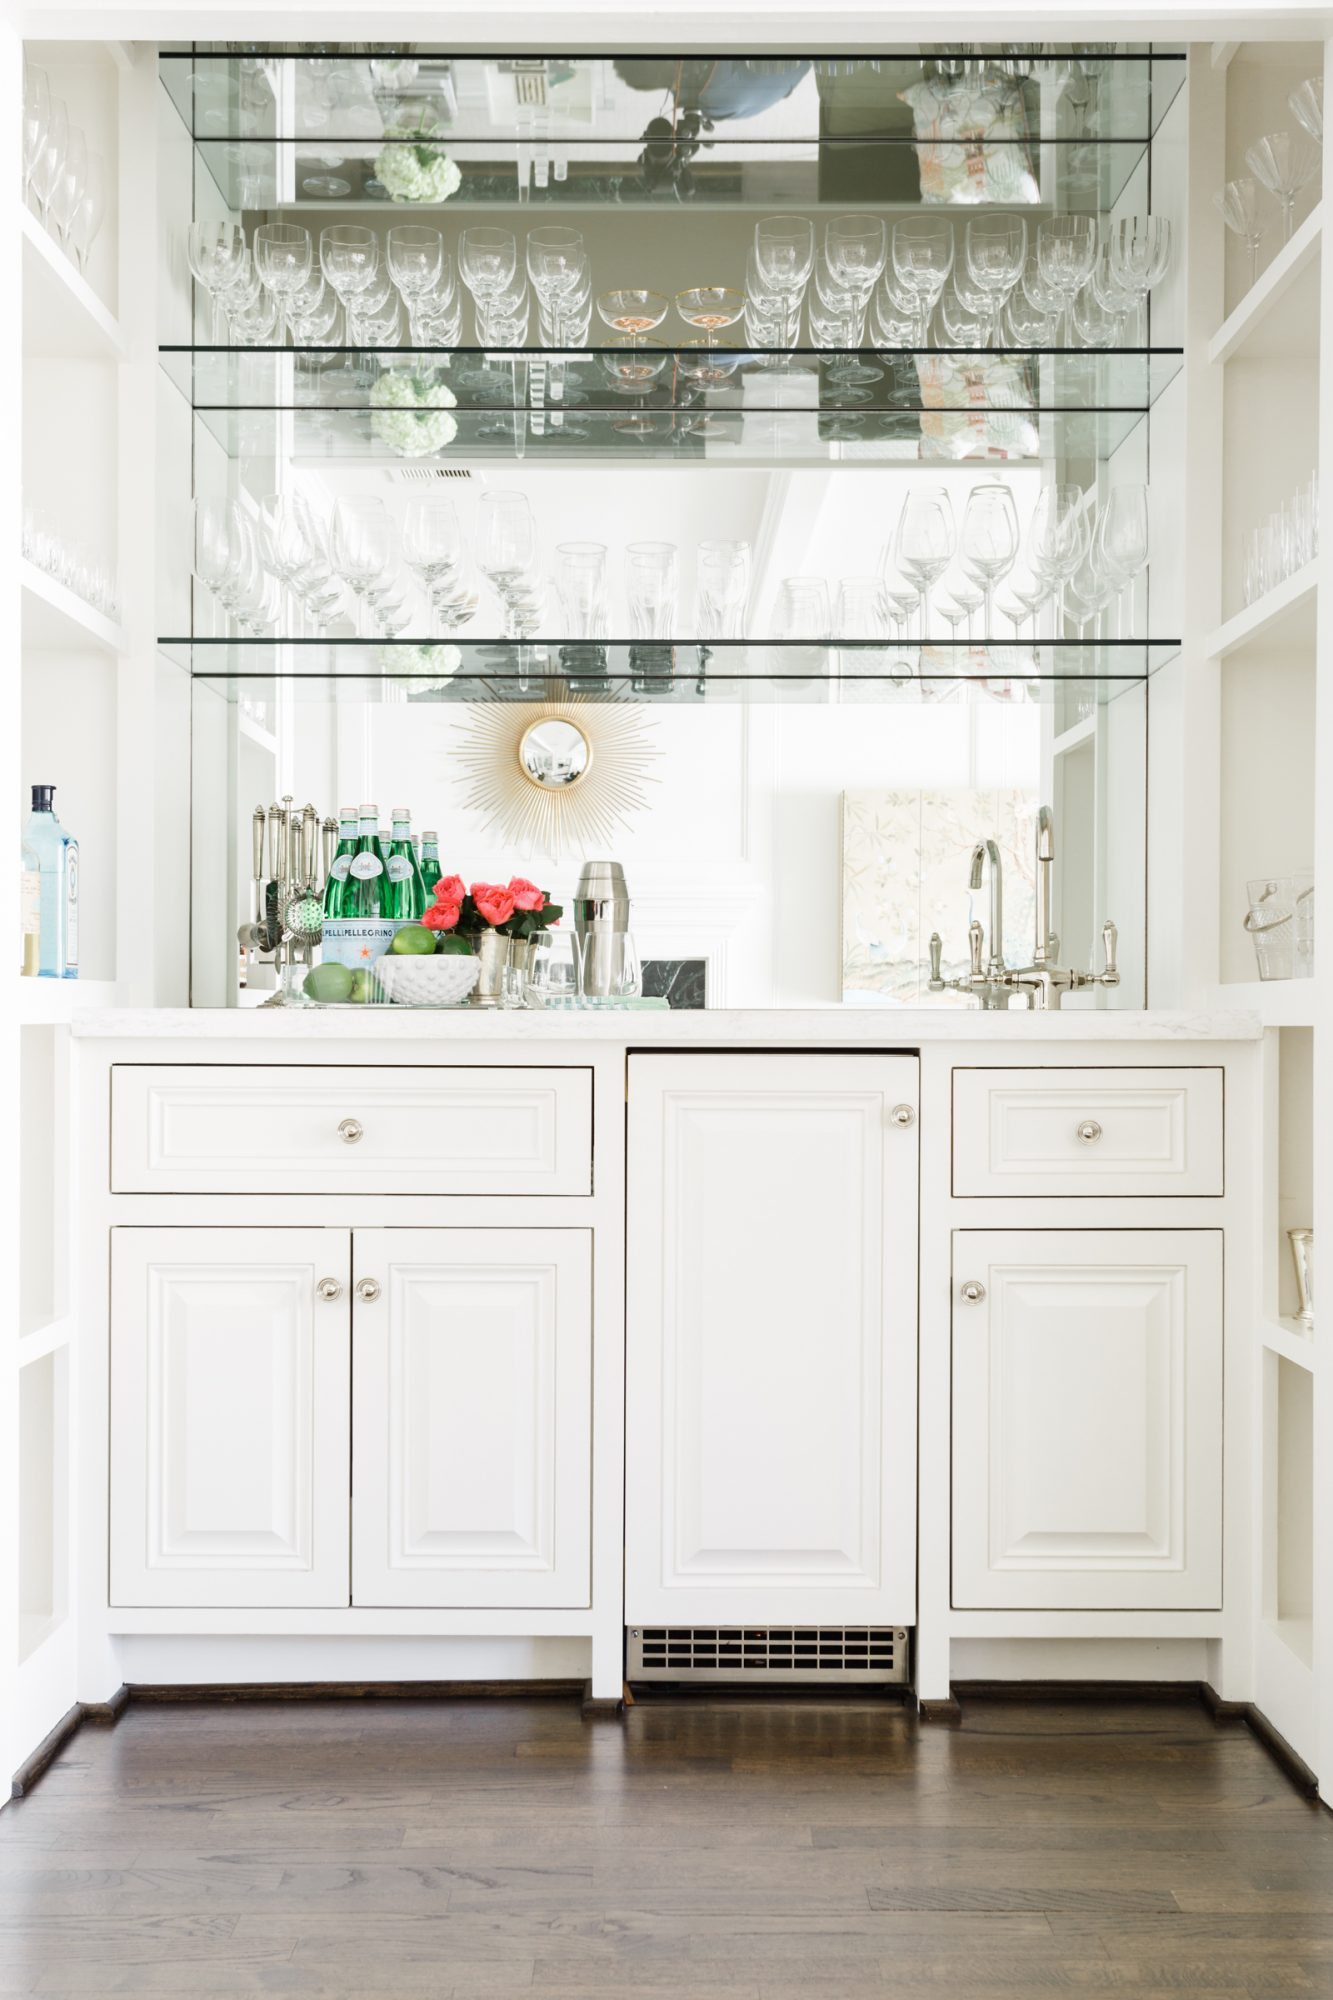 Closet Minibars Are En Vogue for 2018- Southern Living